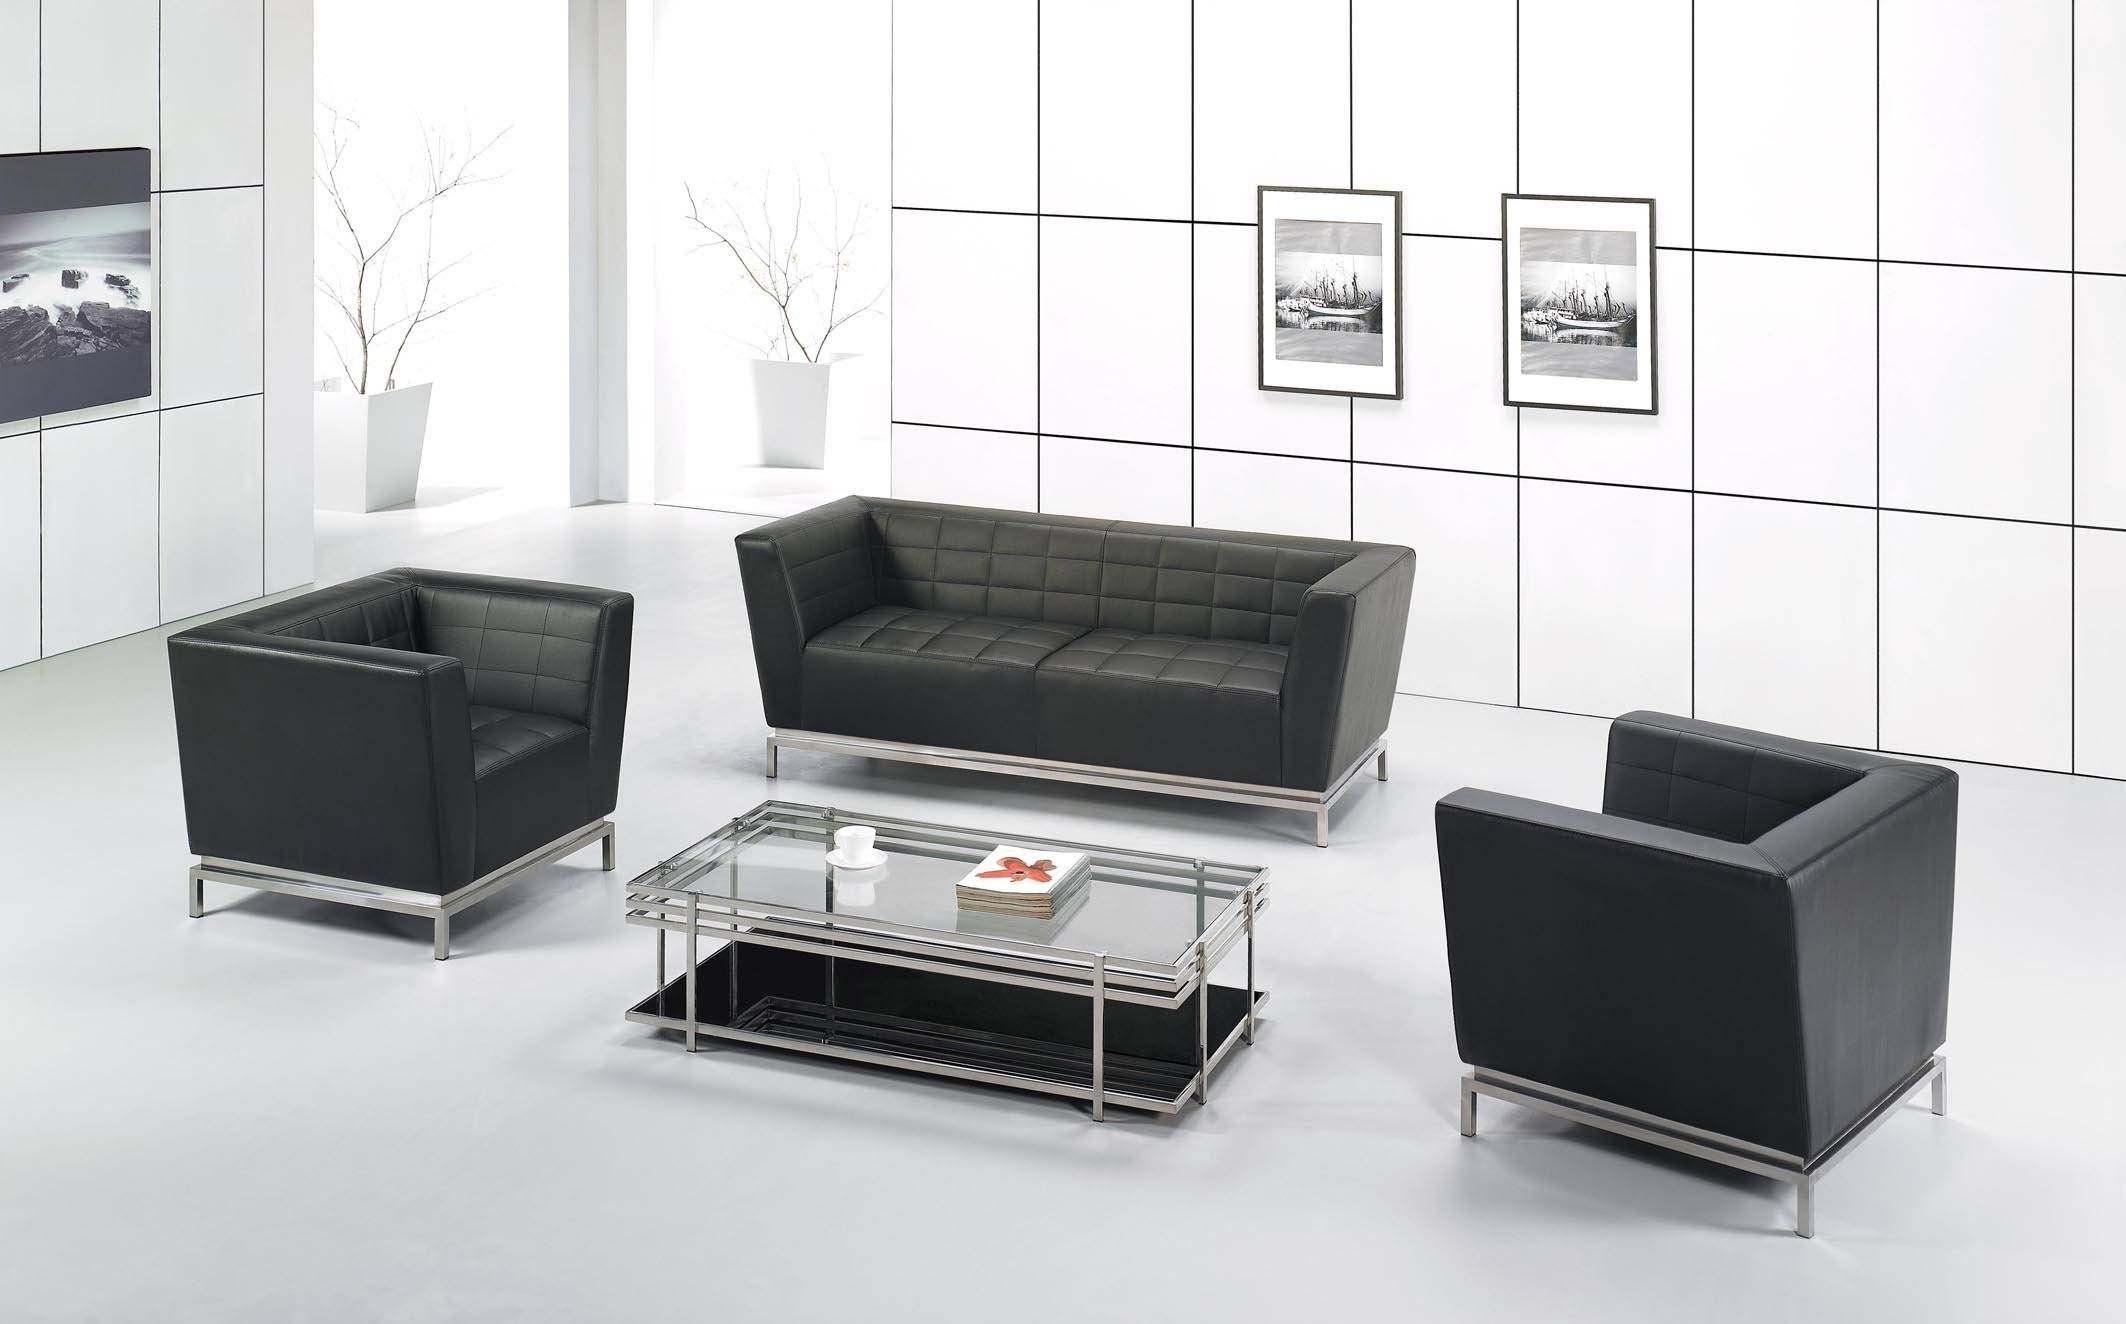 Office Reception Chairs Leather Black Leather Office Guest Chair Regarding Office Sofas And Chairs (View 8 of 15)